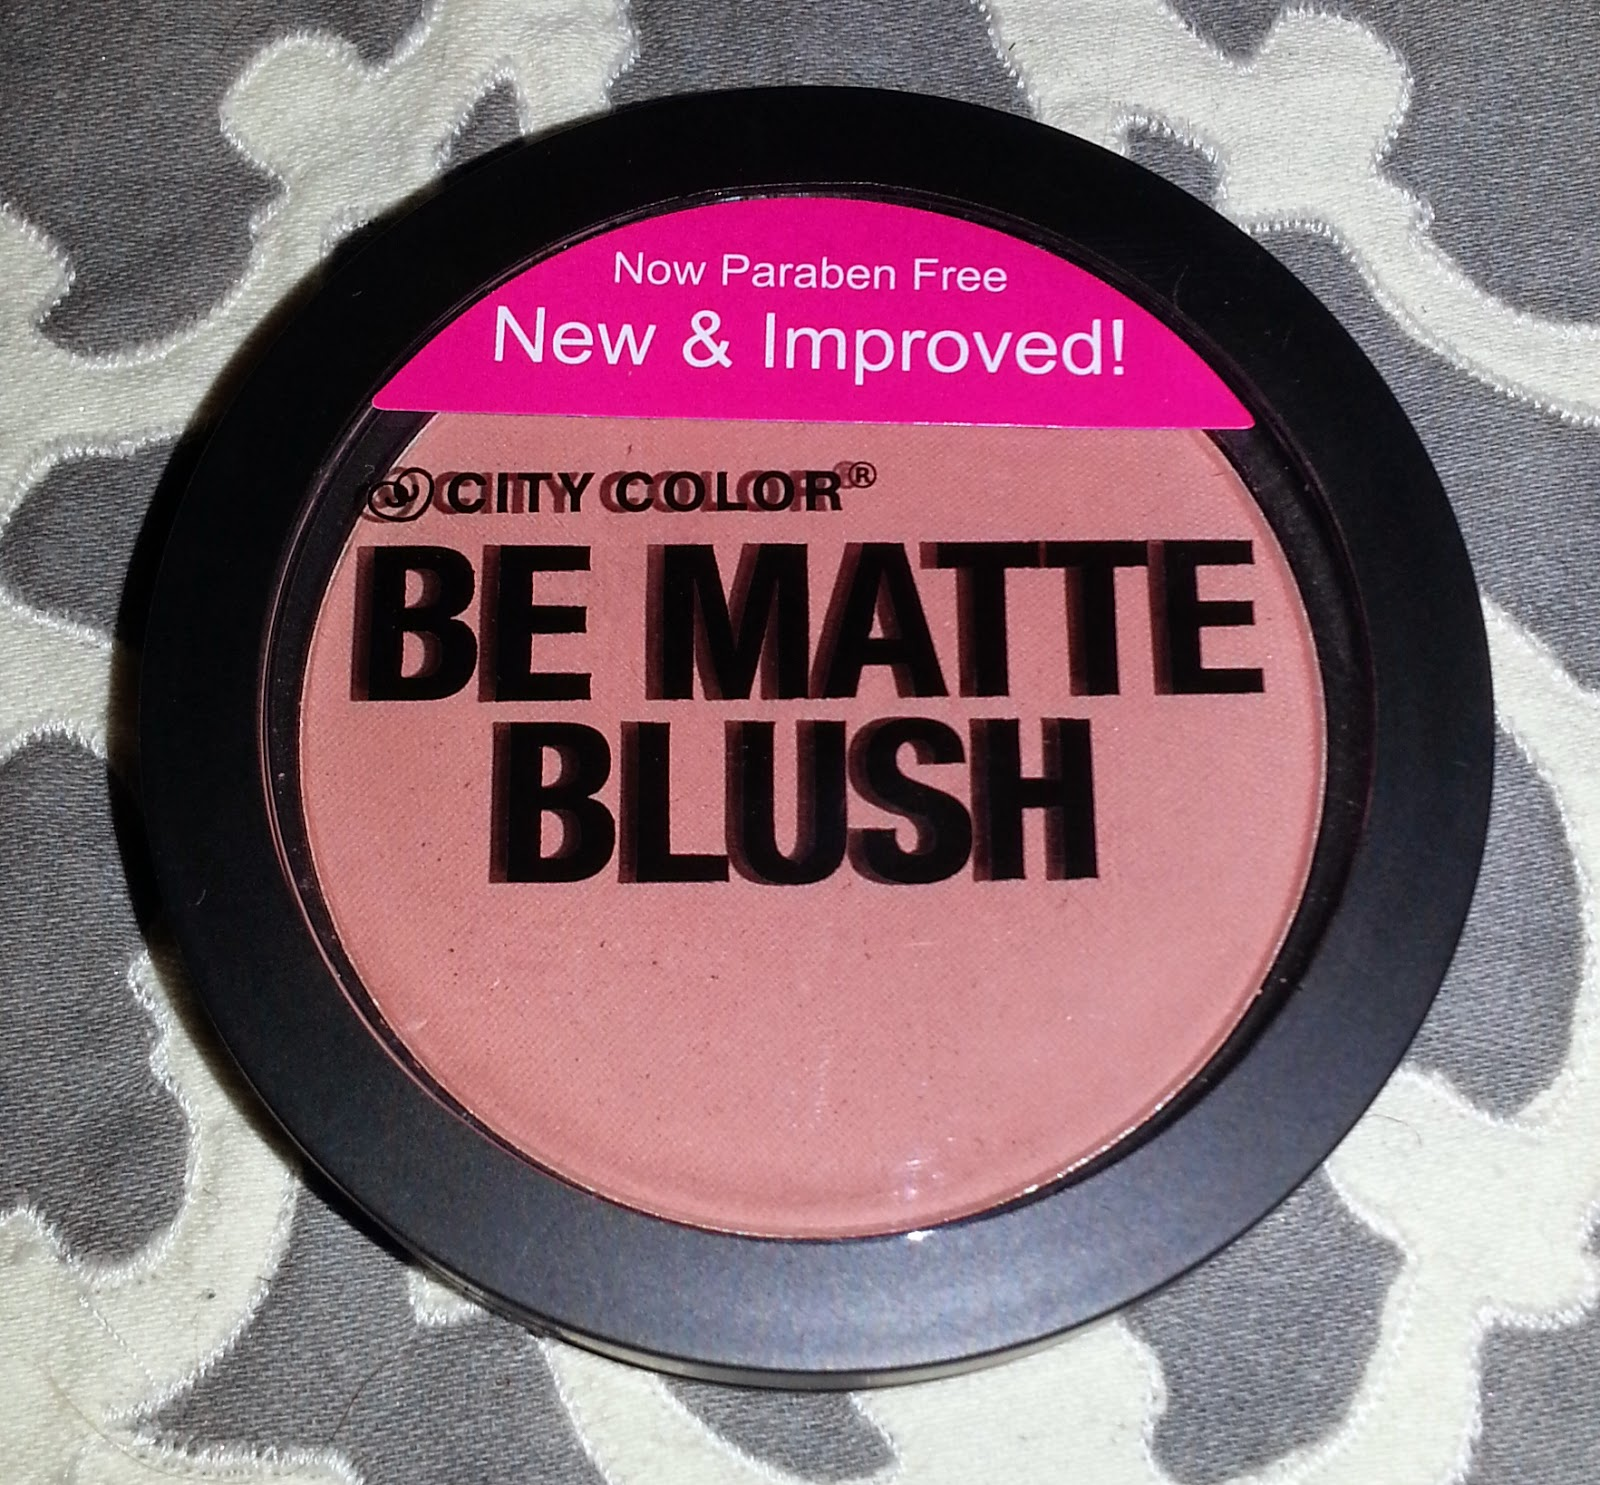 City Color Be Matte Blush in Papaya